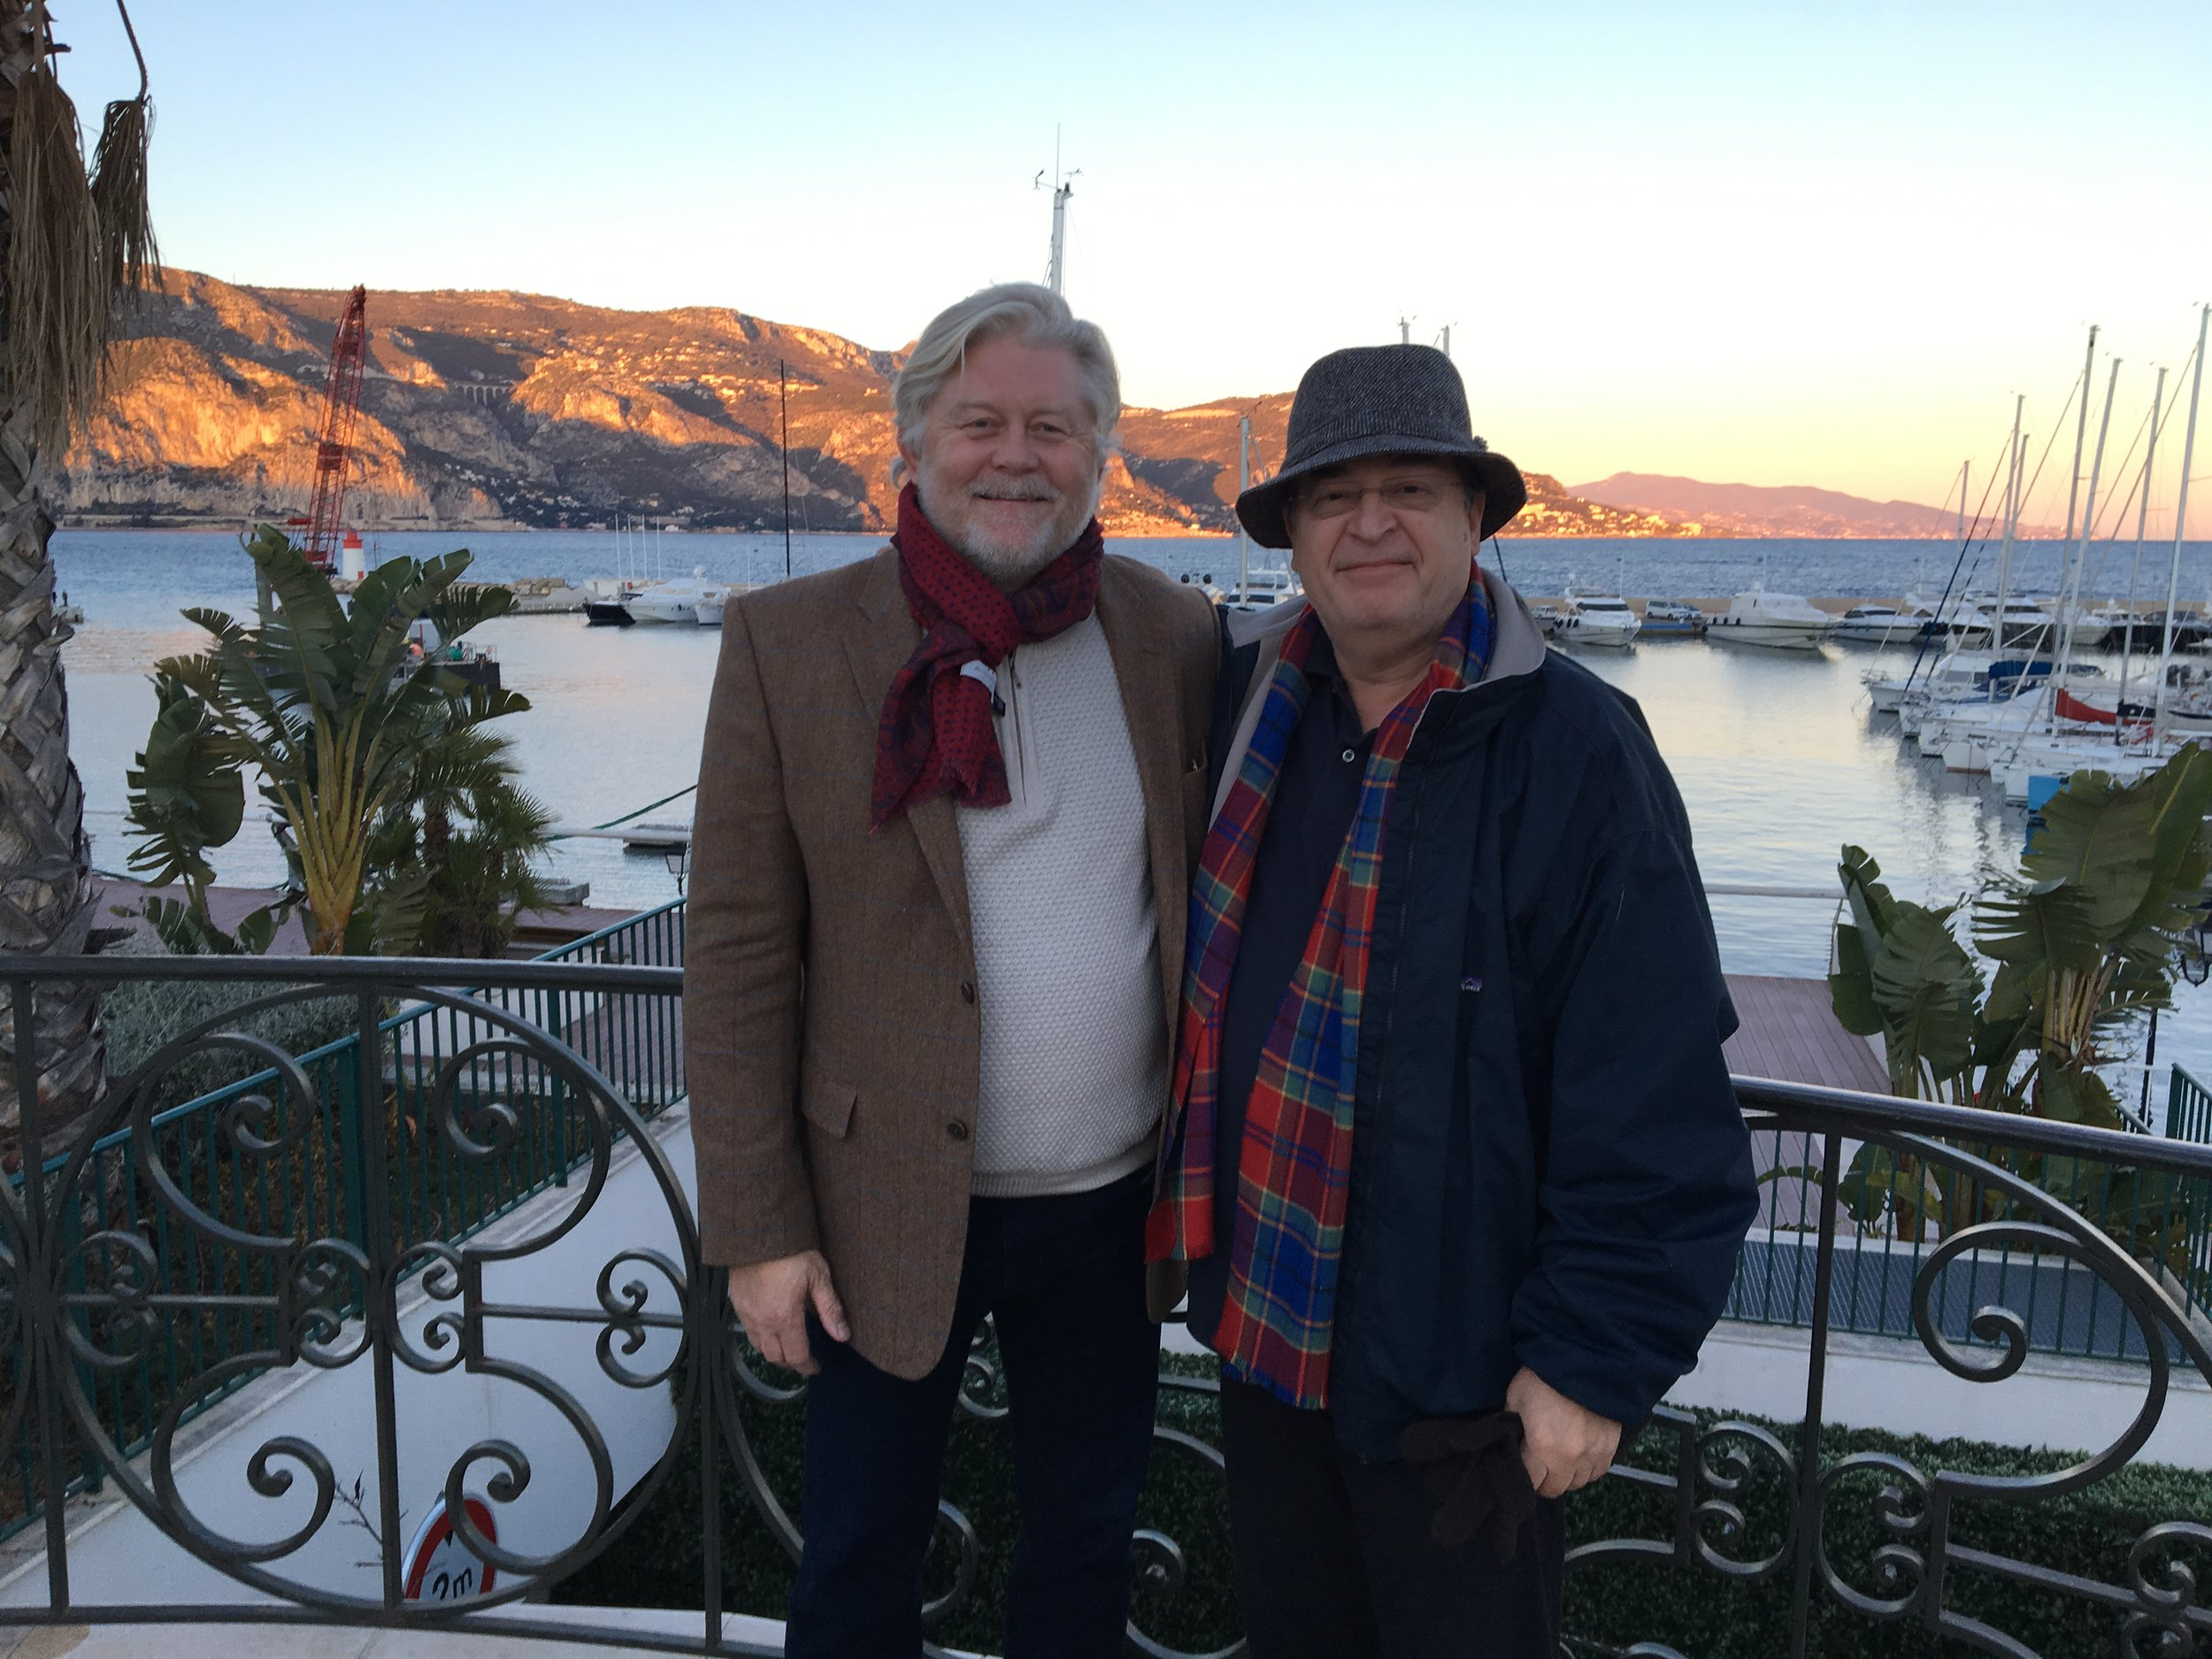 McKay Daines and Ron Maxwell in France working on Joan of Arc film